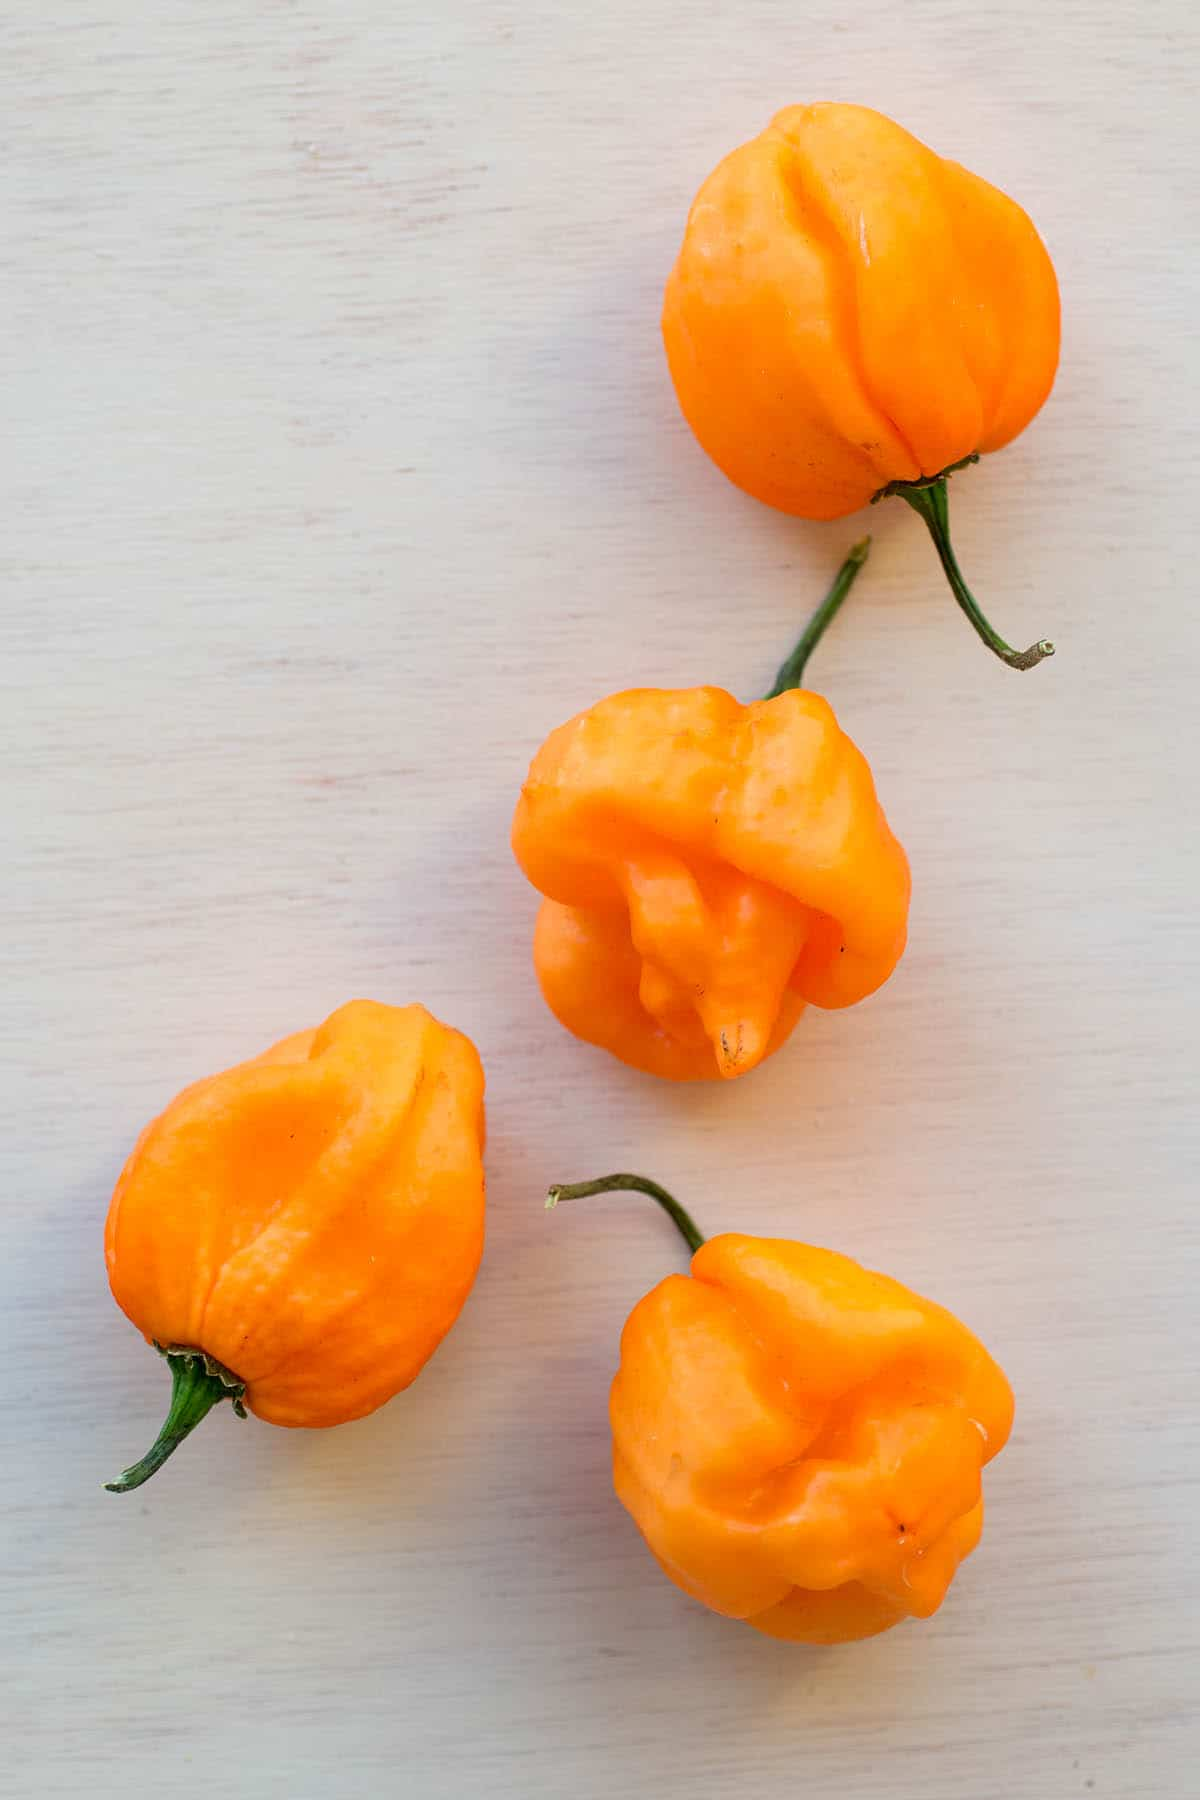 Scotch Bonnet Chili Peppers – All About Them